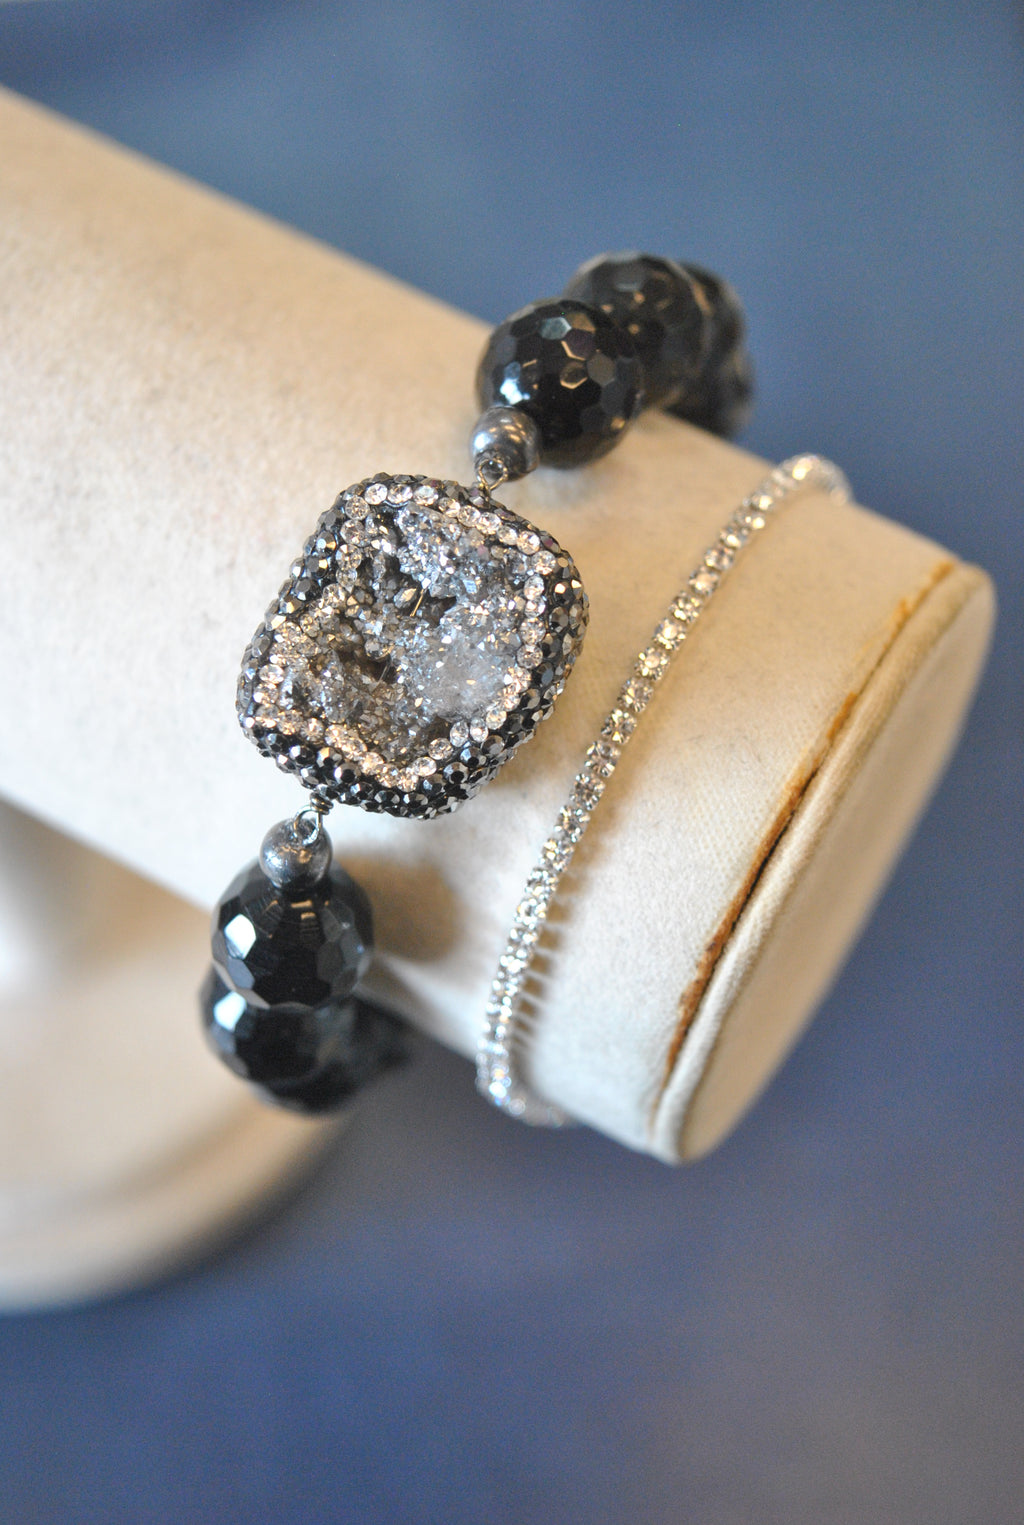 BLACK ONYX SILVER DRUZY AND SWAROVSKI CRYSTALS STRETCHY BRACELET SET